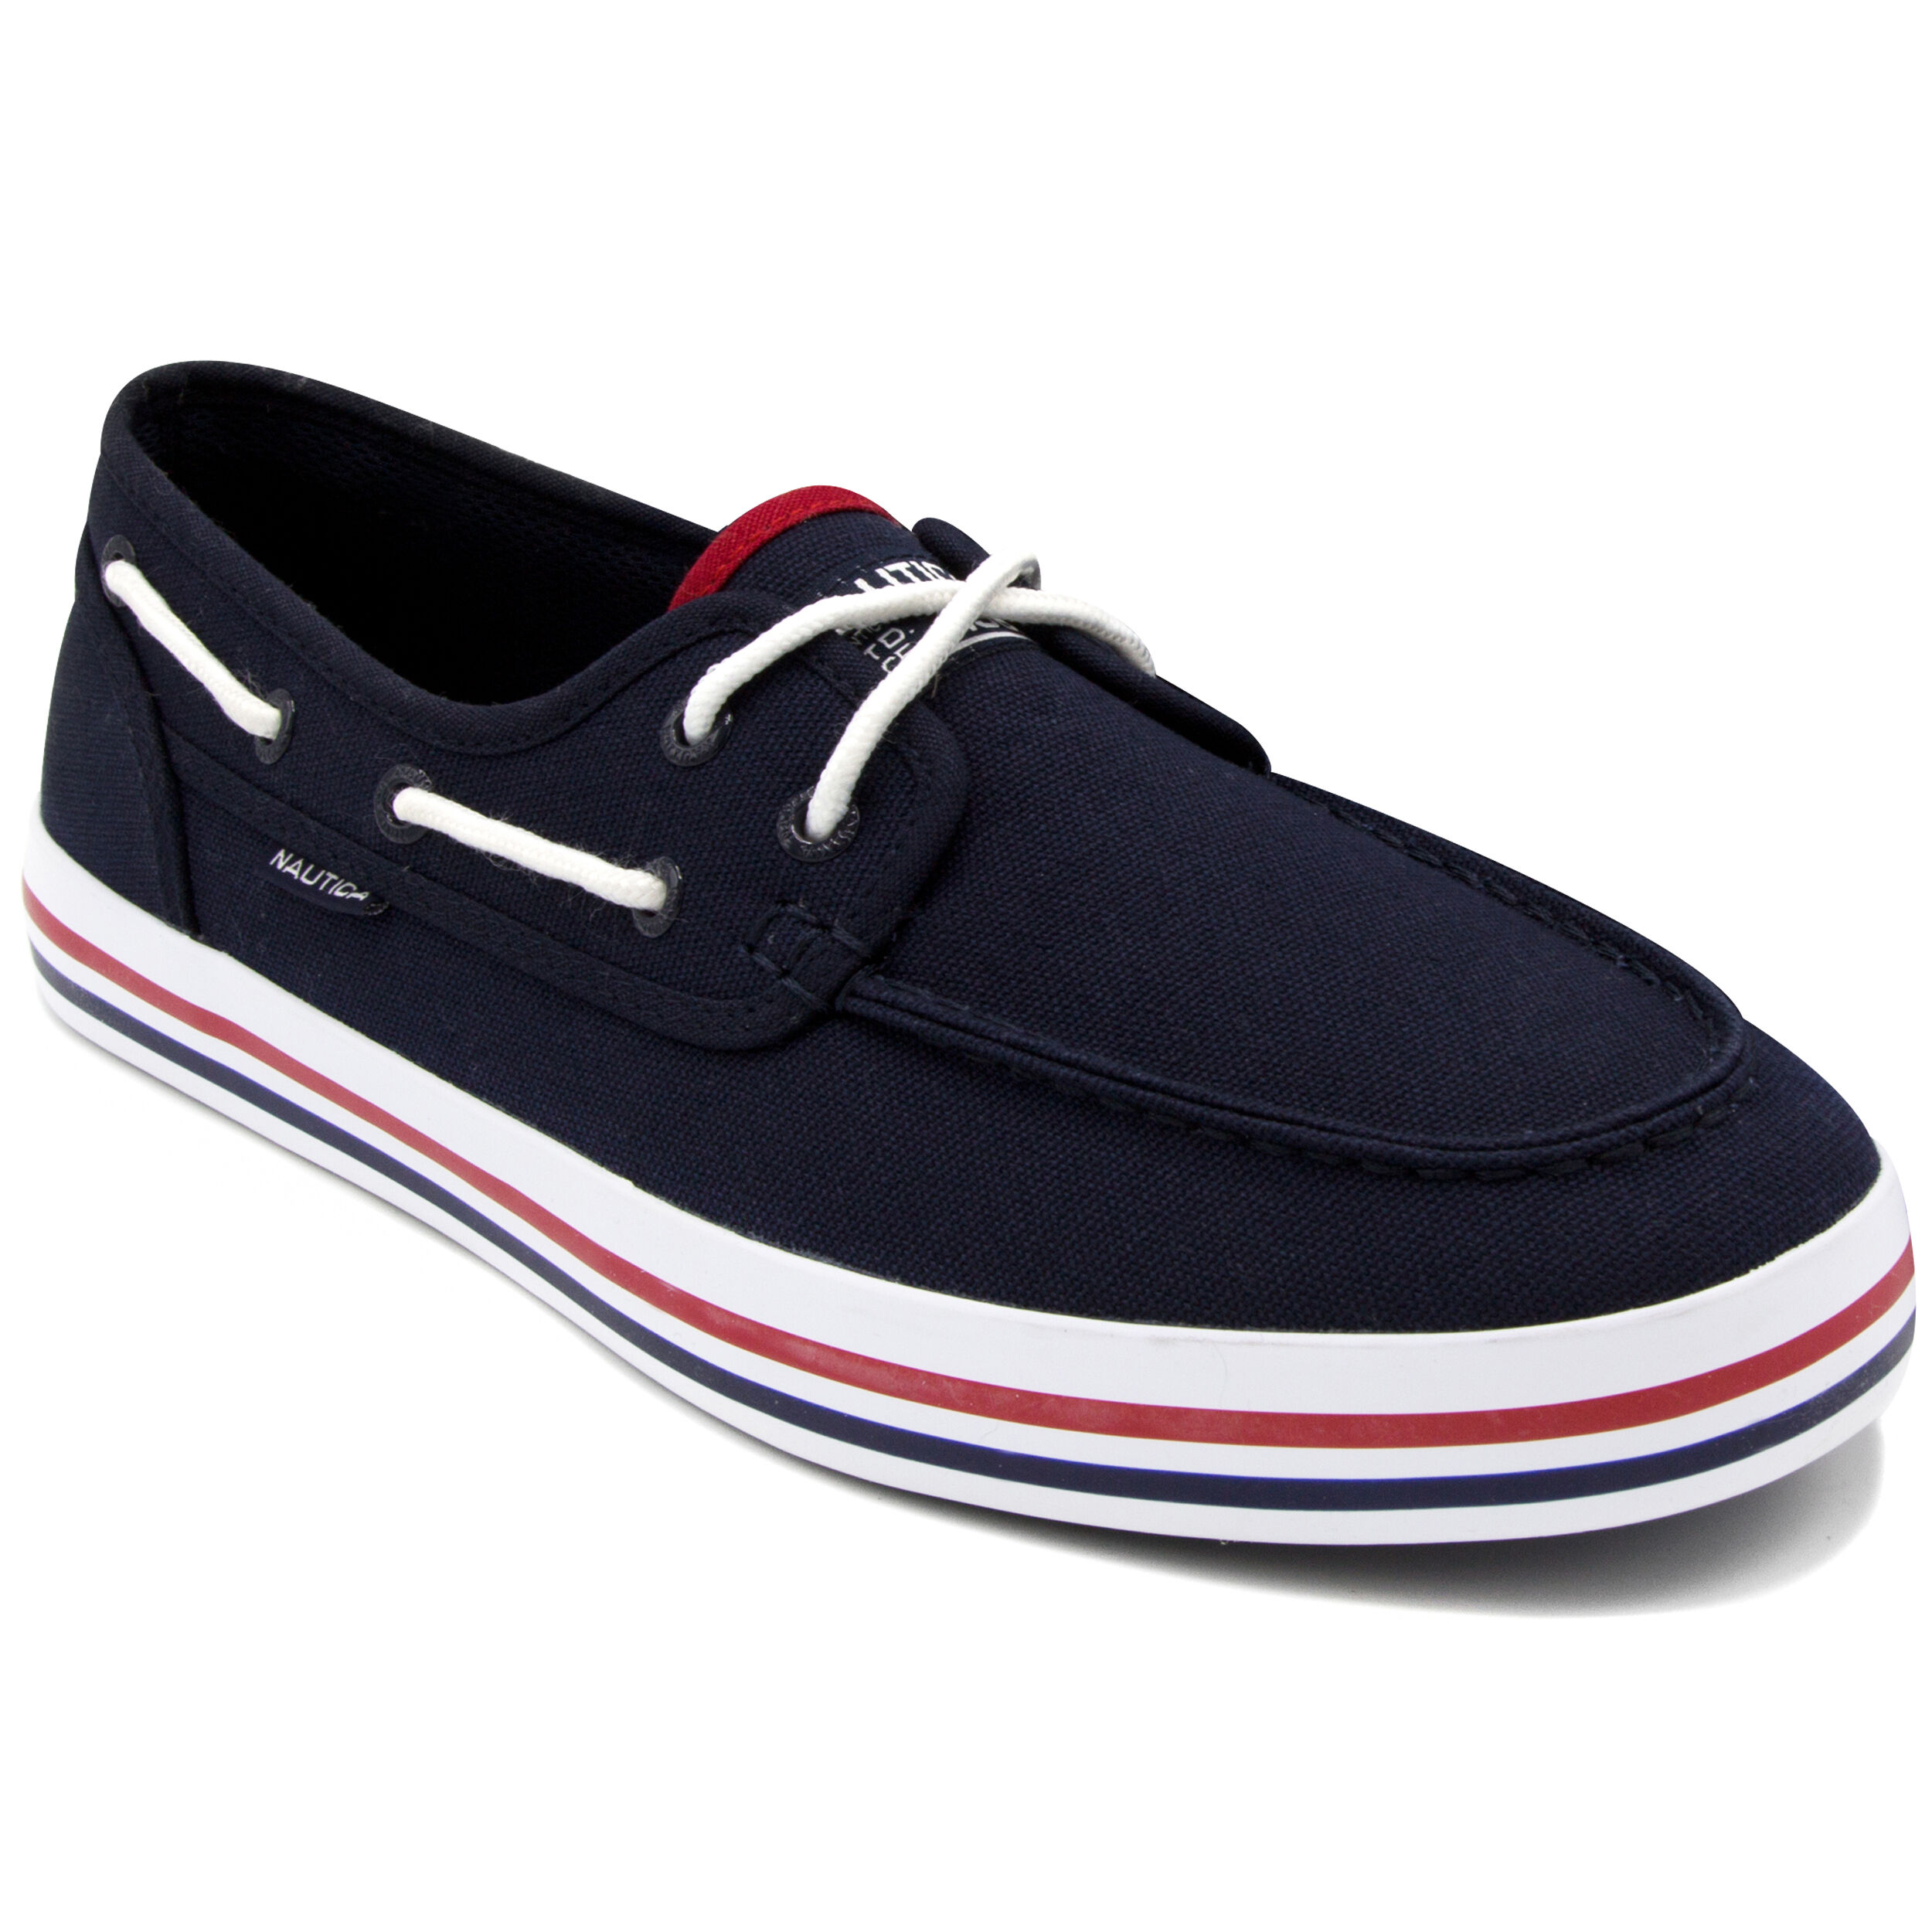 Spinnaker Boat Shoes - Navy | Nautica